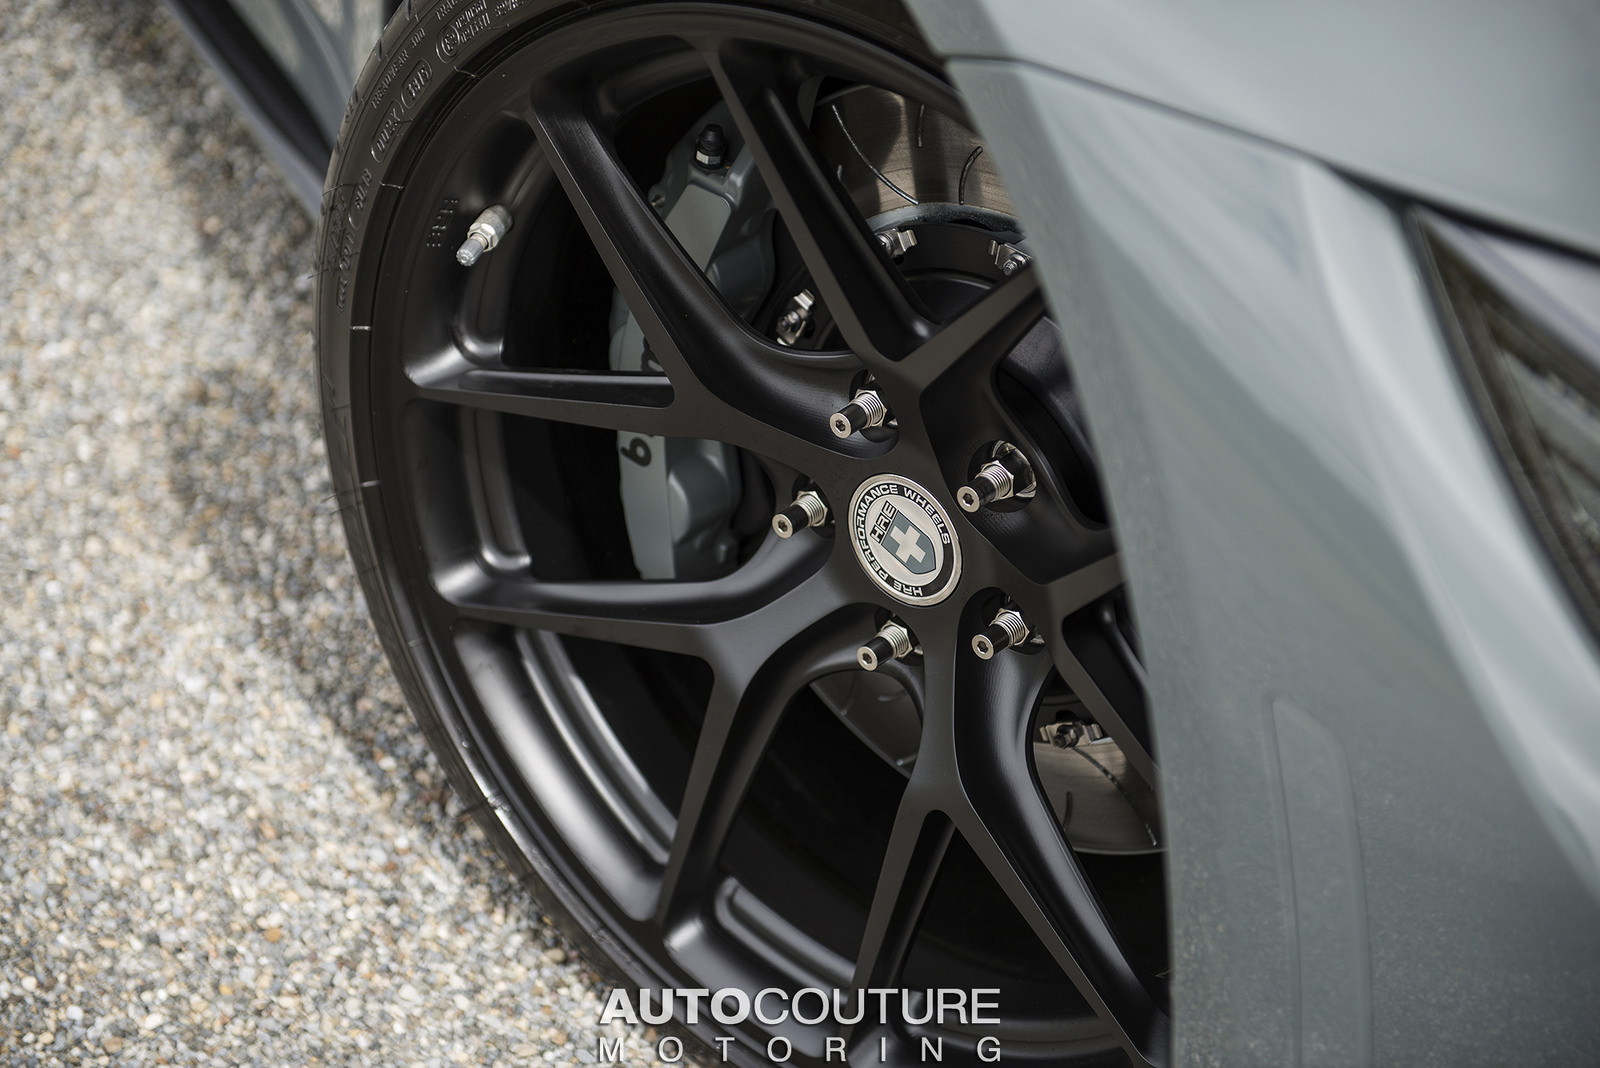 F82 BMW M4 with Complete Aero Package by AUTOCouture Motoring (2)